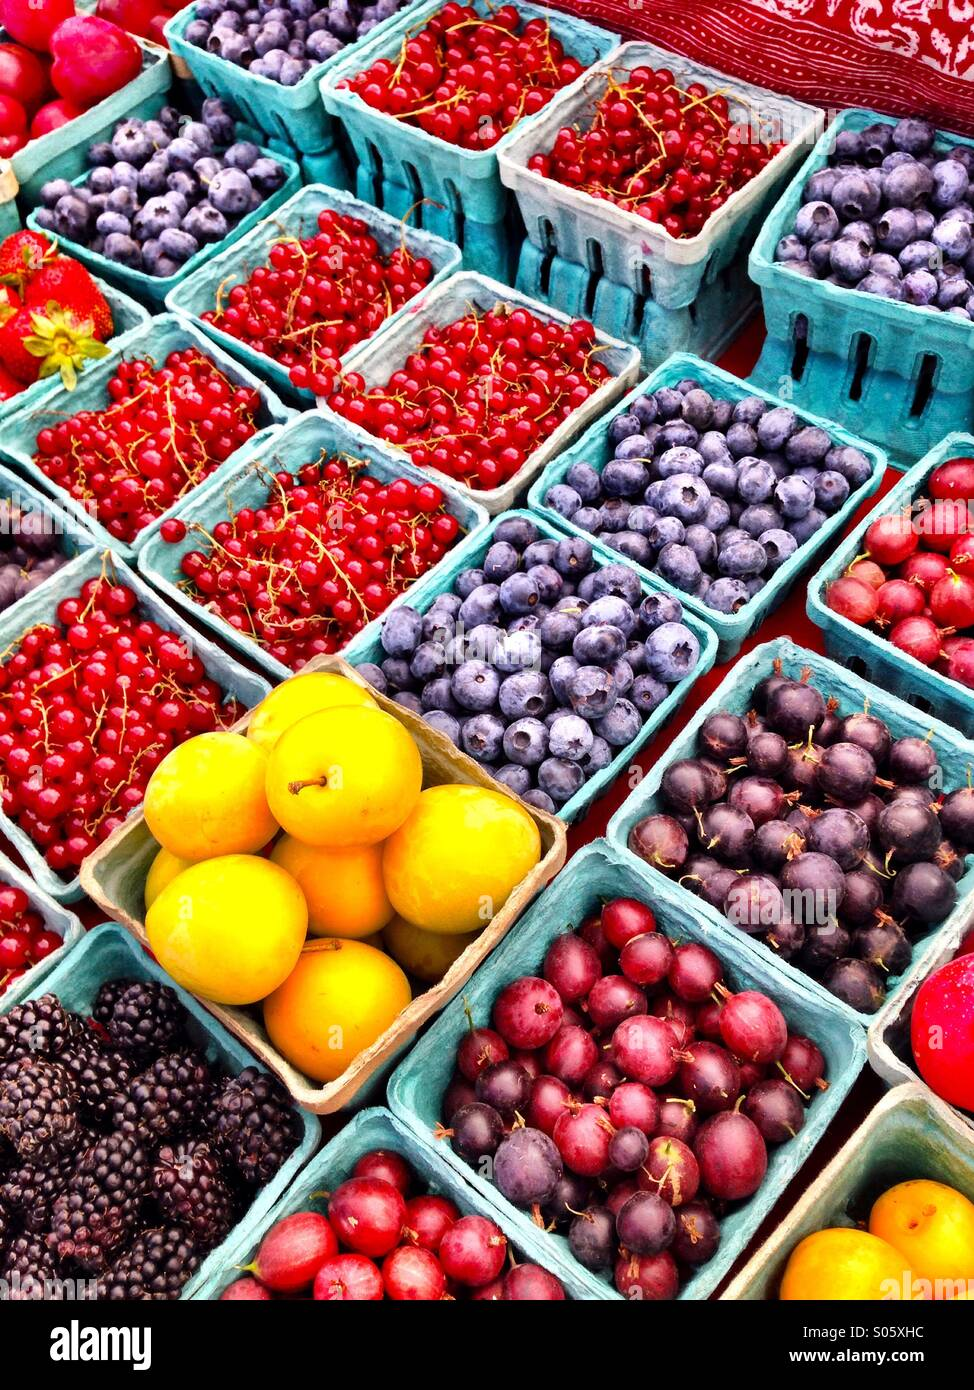 Summer fruit at farmers market Stock Photo